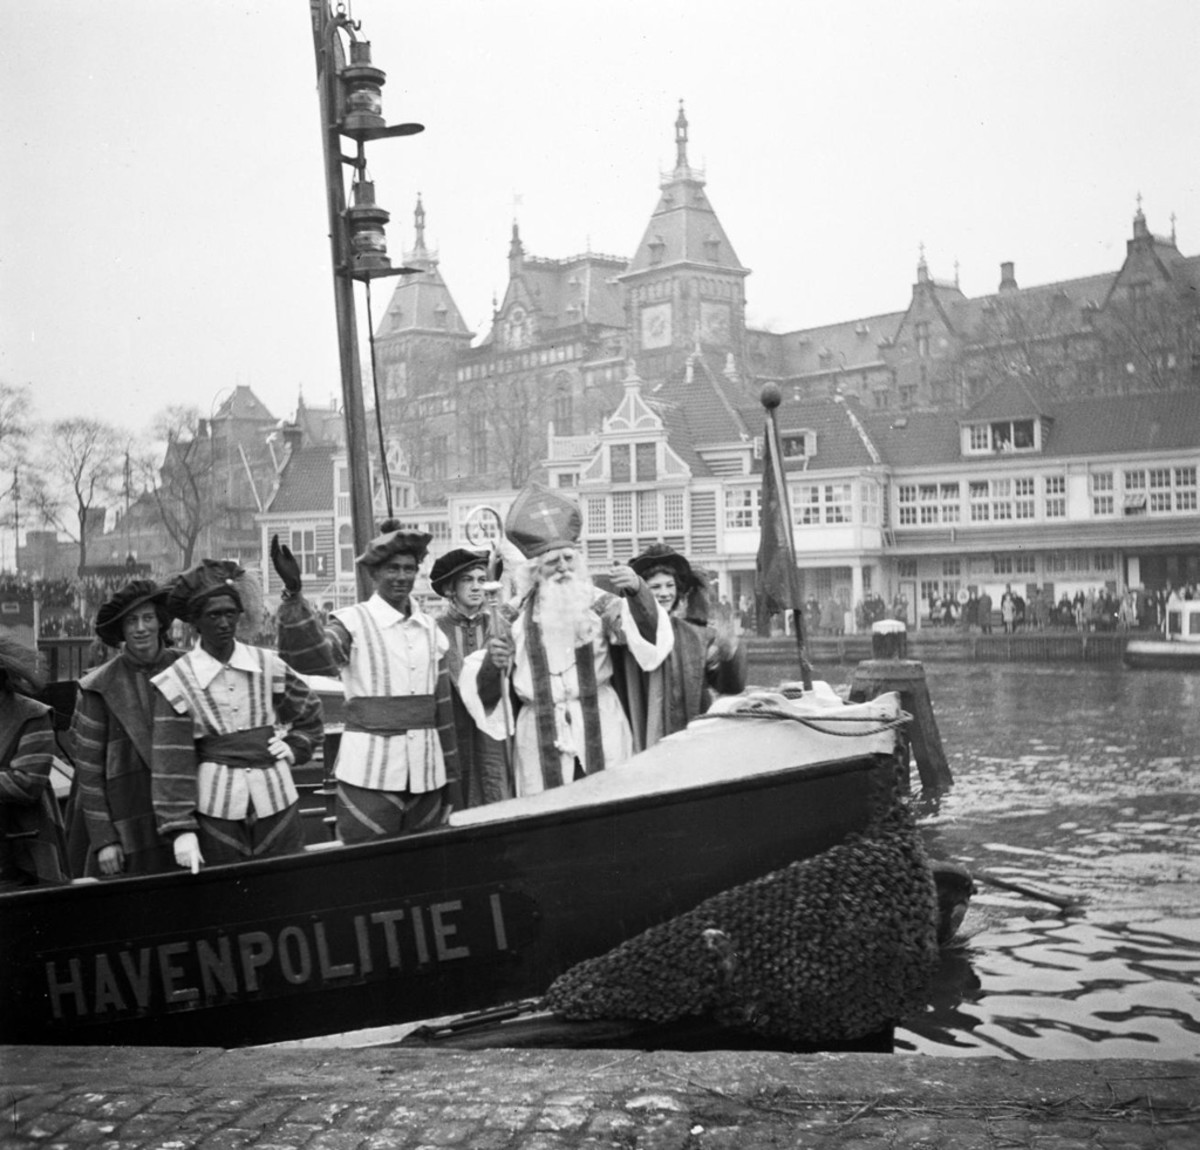 Sinterklaas arrives in Amsterdam in 1846